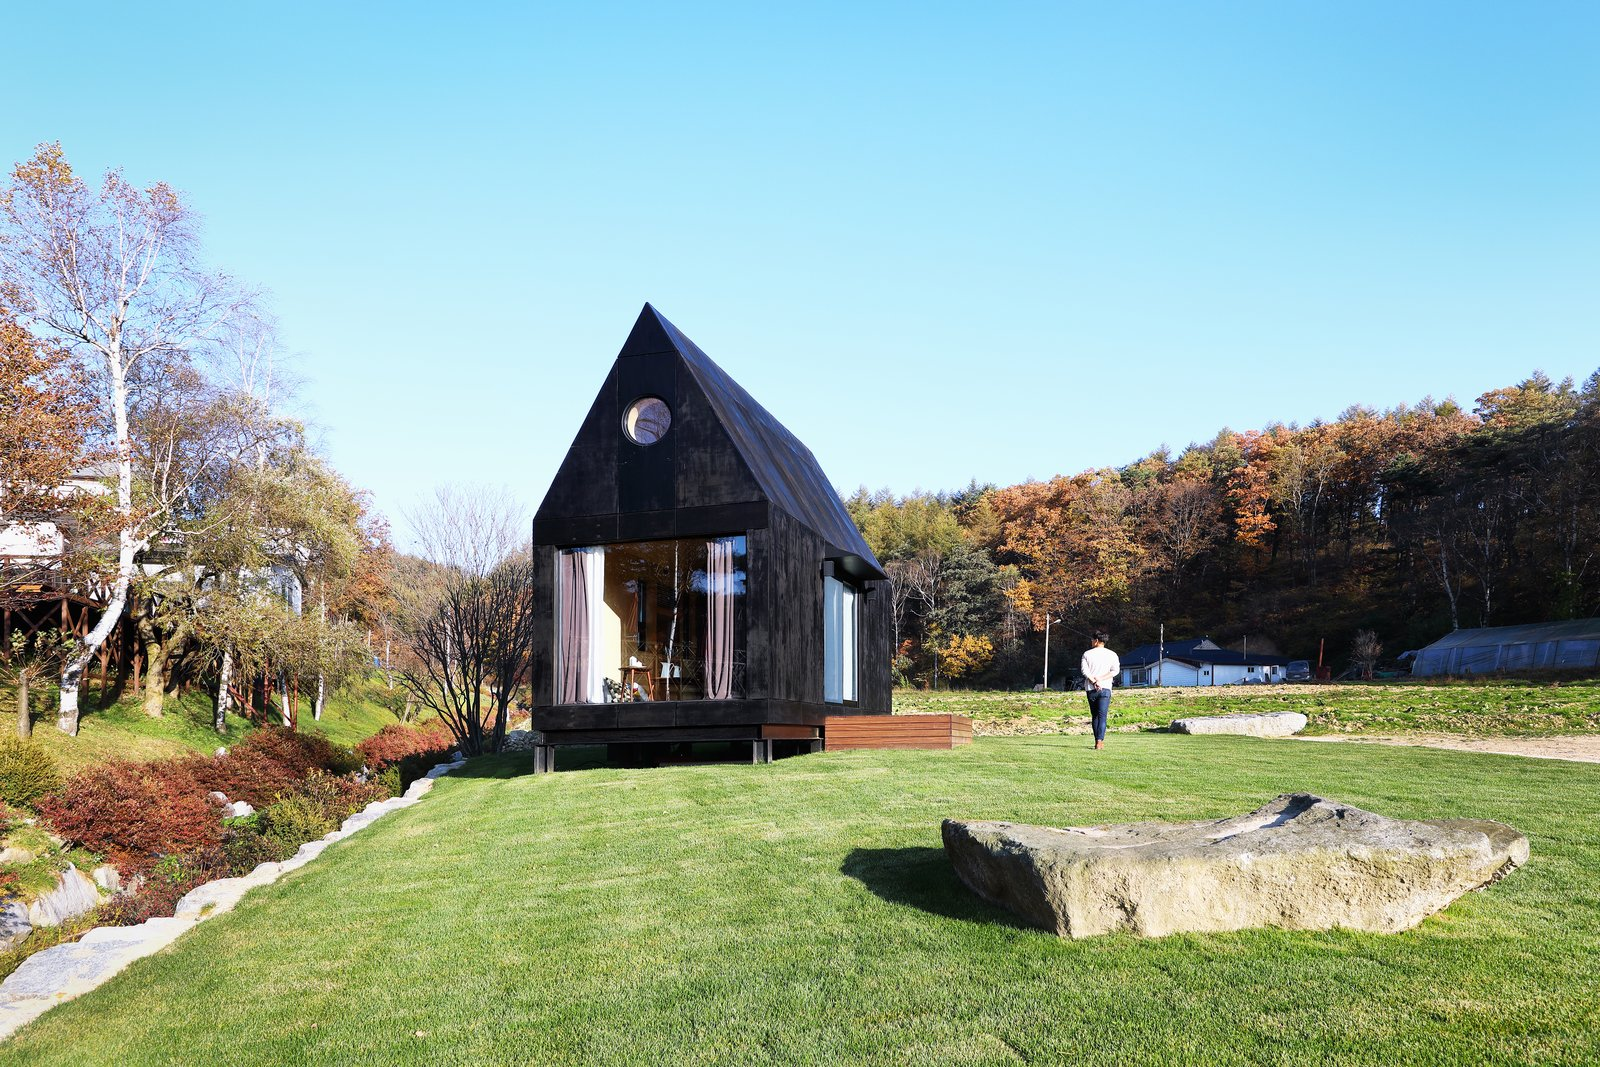 Tiny House Of Slow Town      Location         :  14-364, Hoenggye 5-ri, Daegwanryeong-myeon,                                 Pyeongchang-gun, Gangwon-do, Korea Architects       :  DNC ARCHITECTS , THEPLUS PARTNERS Area                   :  19.8m2